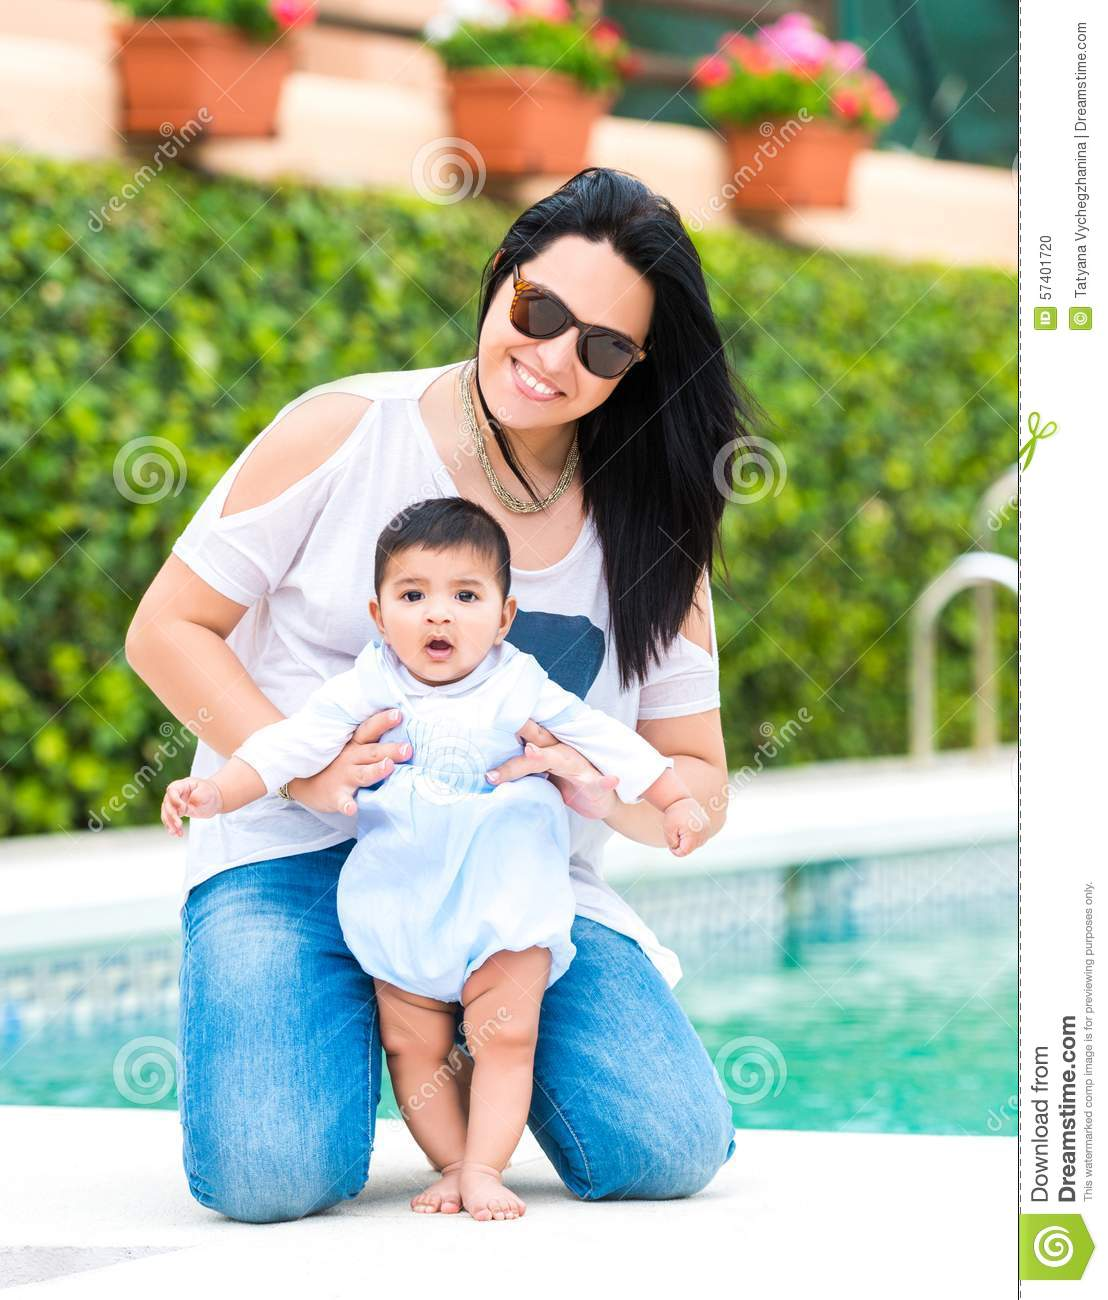 Young Mother With Her Baby Near The Swimming Pool Stock Photo Image 57401720